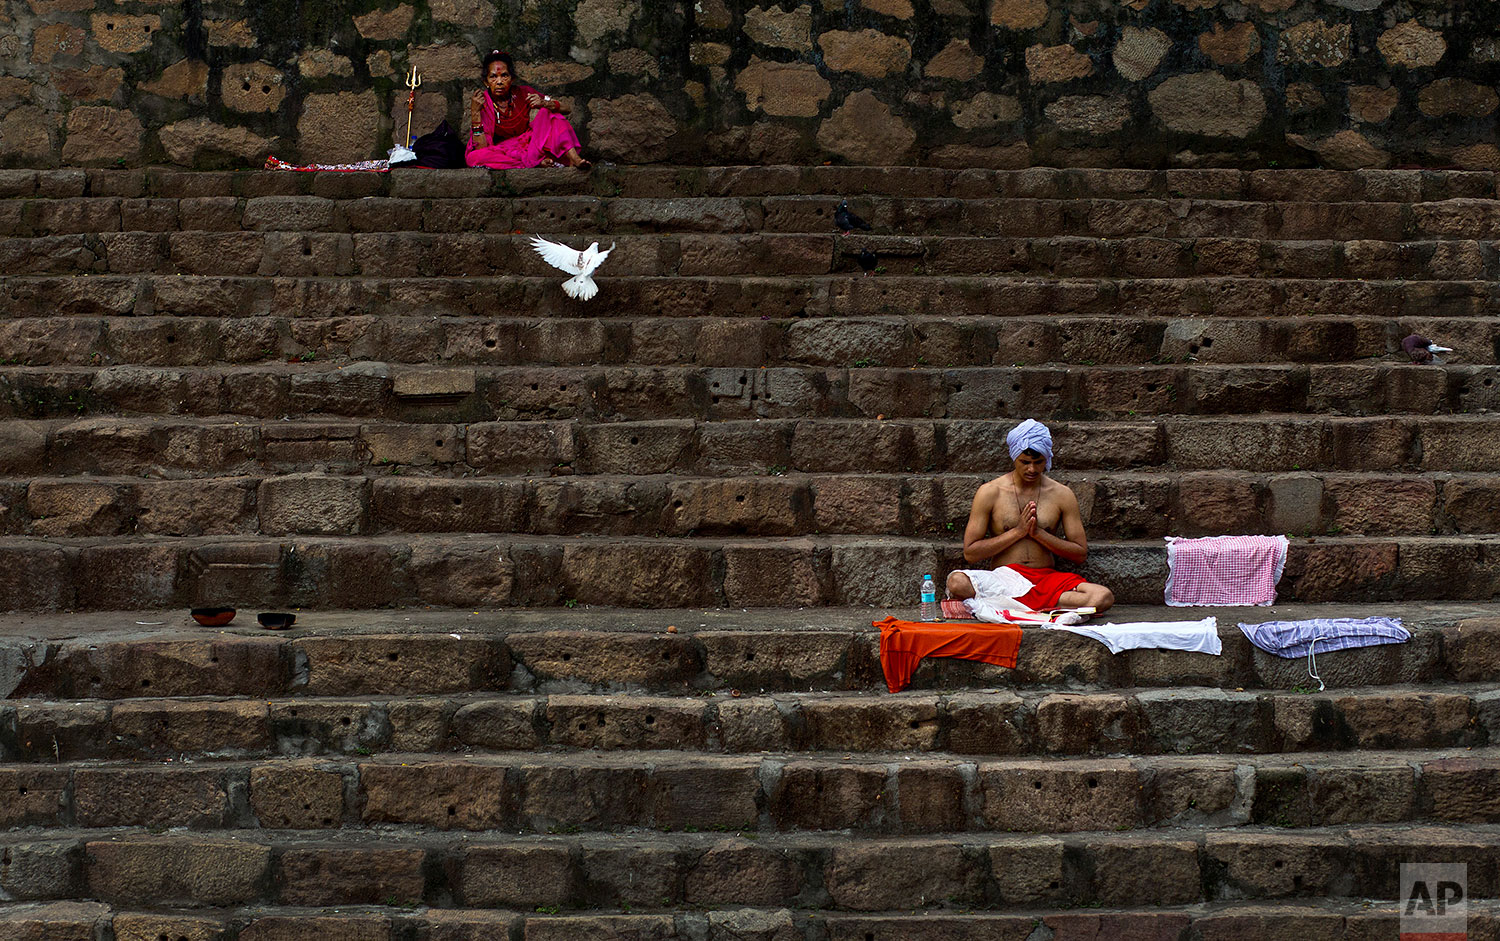 devotees perform rituals sitting on steps of the Kamakhya temple during the Ambubachi festival in Gauhati, India, June 25, 2019 .  The temple is presided over by the goddess Kamakhya, the most important goddess of tantric worship, an esoteric form of Hinduism. The four-day Ambubachi festival is a celebration of Kamakhya's yearly menstrual cycle, and it brings hundreds of thousands of devotees to the temple. (AP Photo/Anupam Nath)